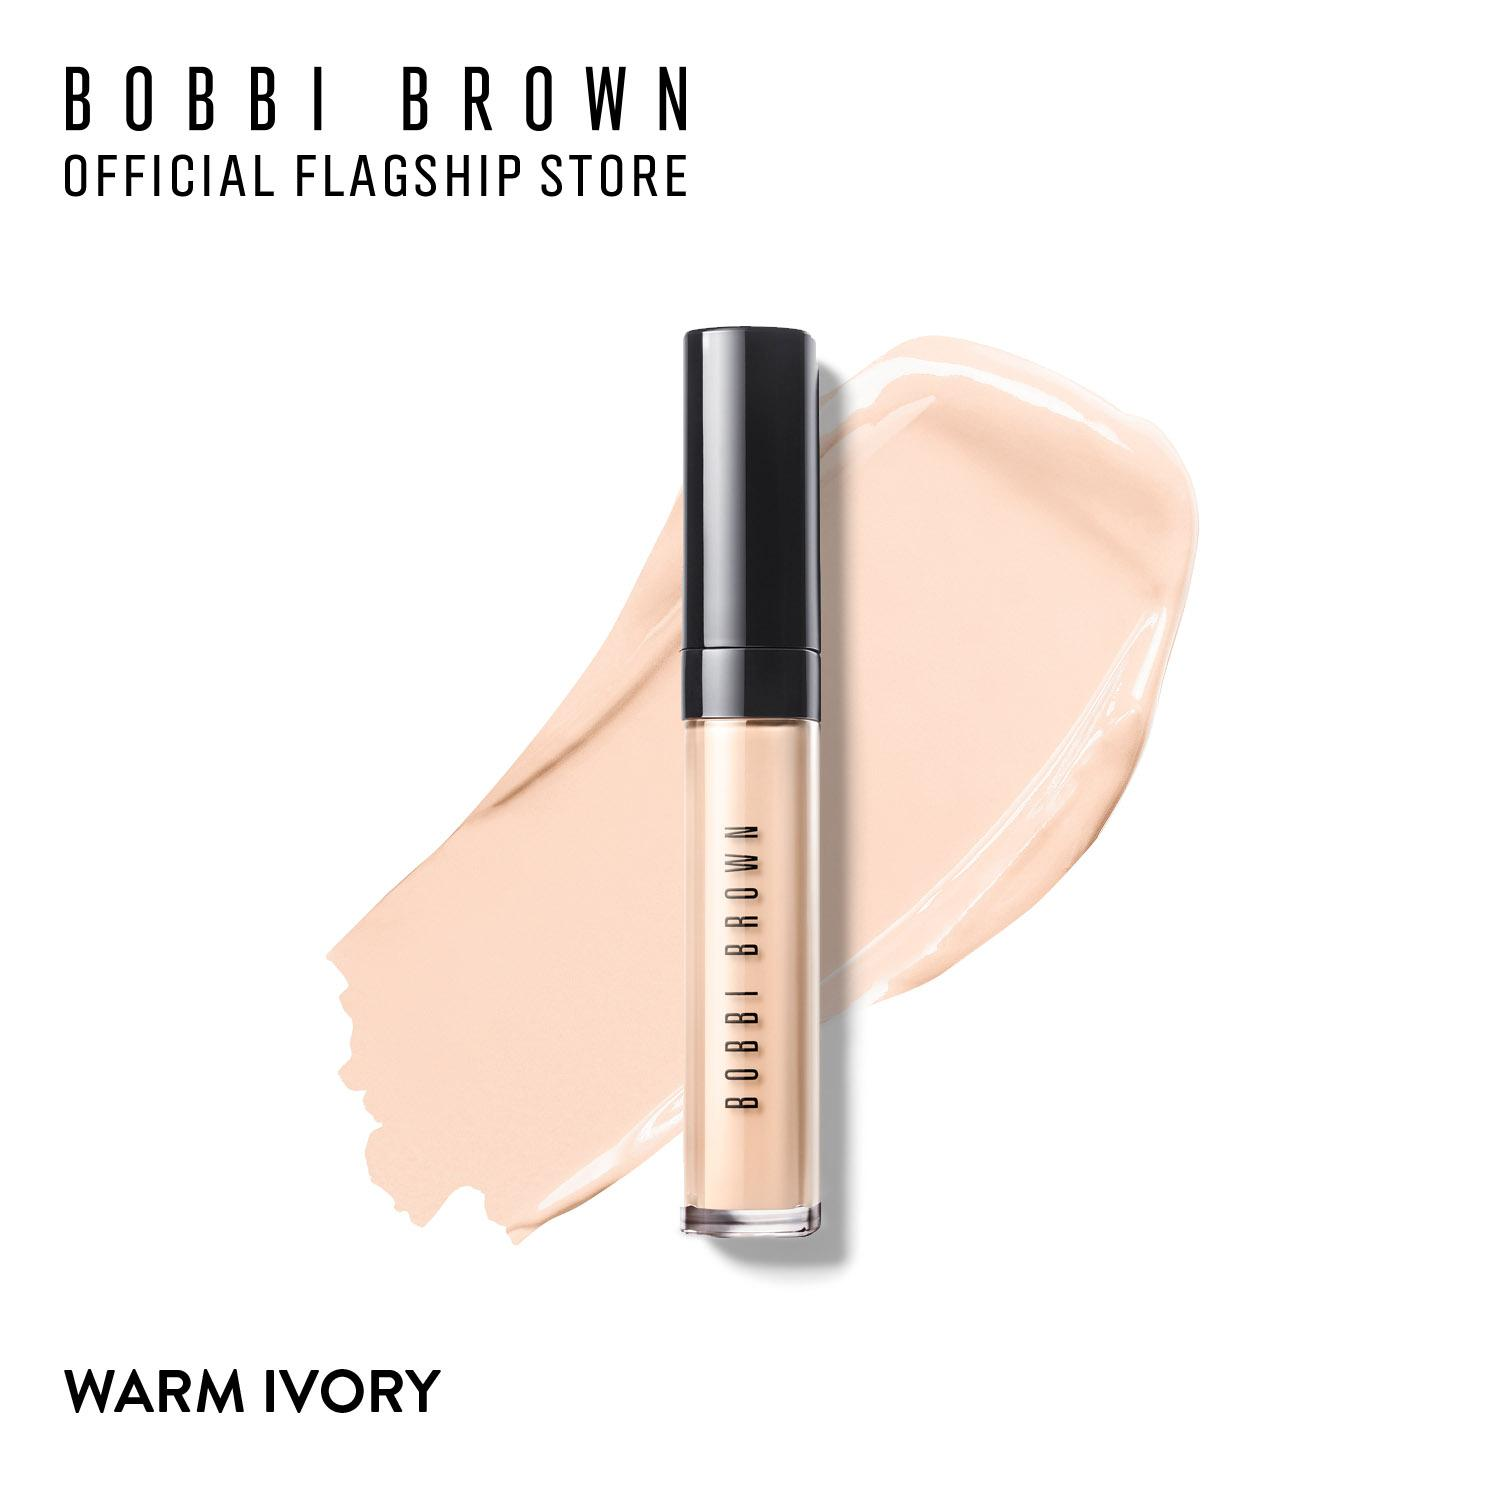 Bobbi Brown Instant Full Coverage Concealer